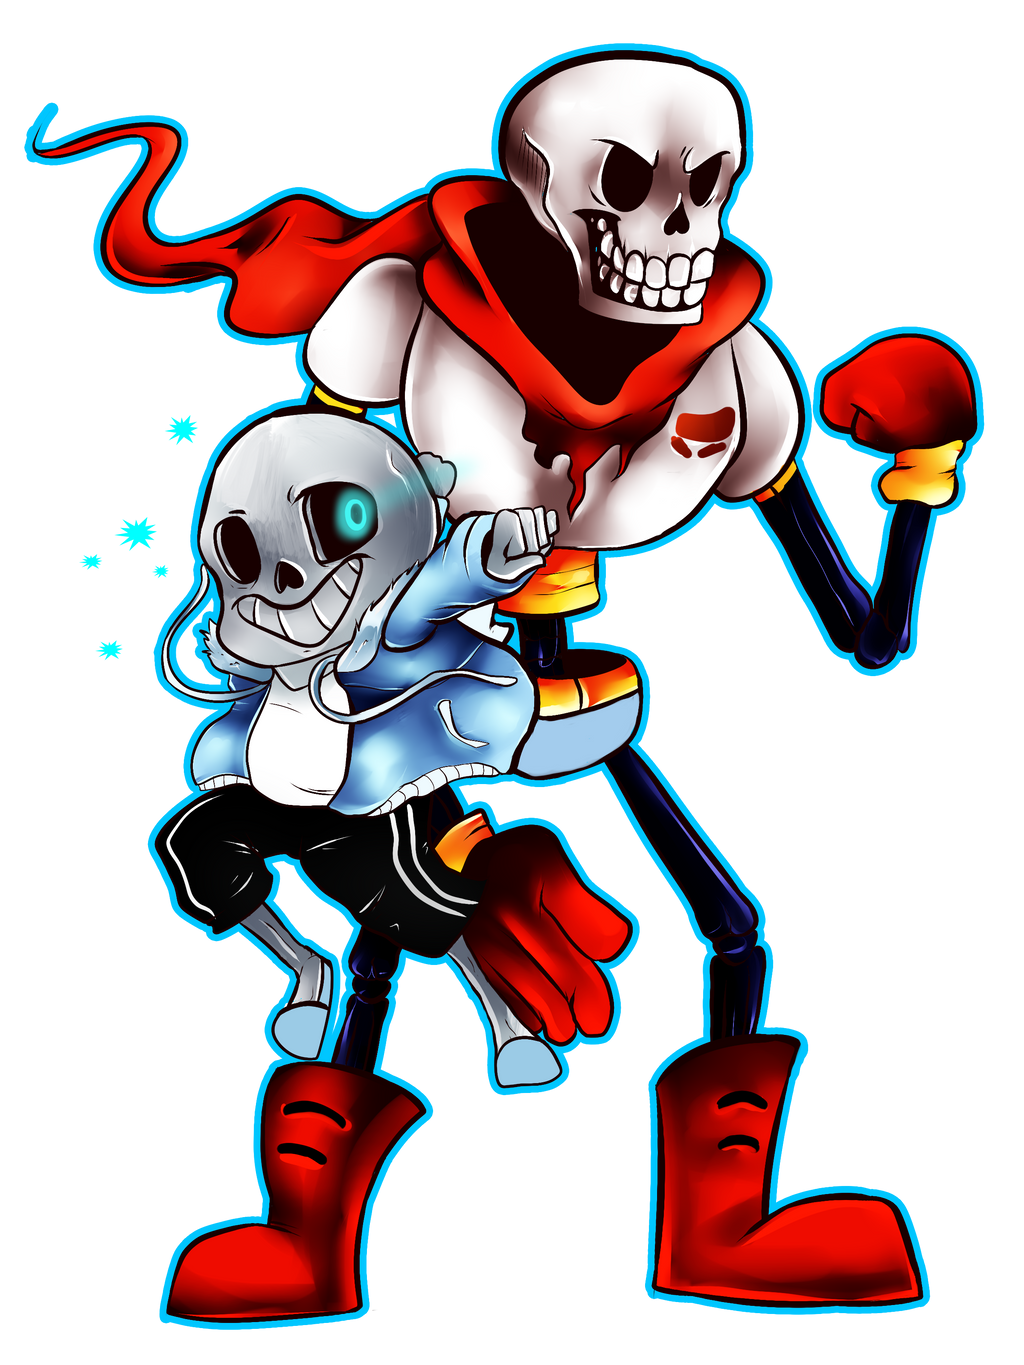 Oopsies - Papyrus, Sans, and Frisk by Frozen--Star on